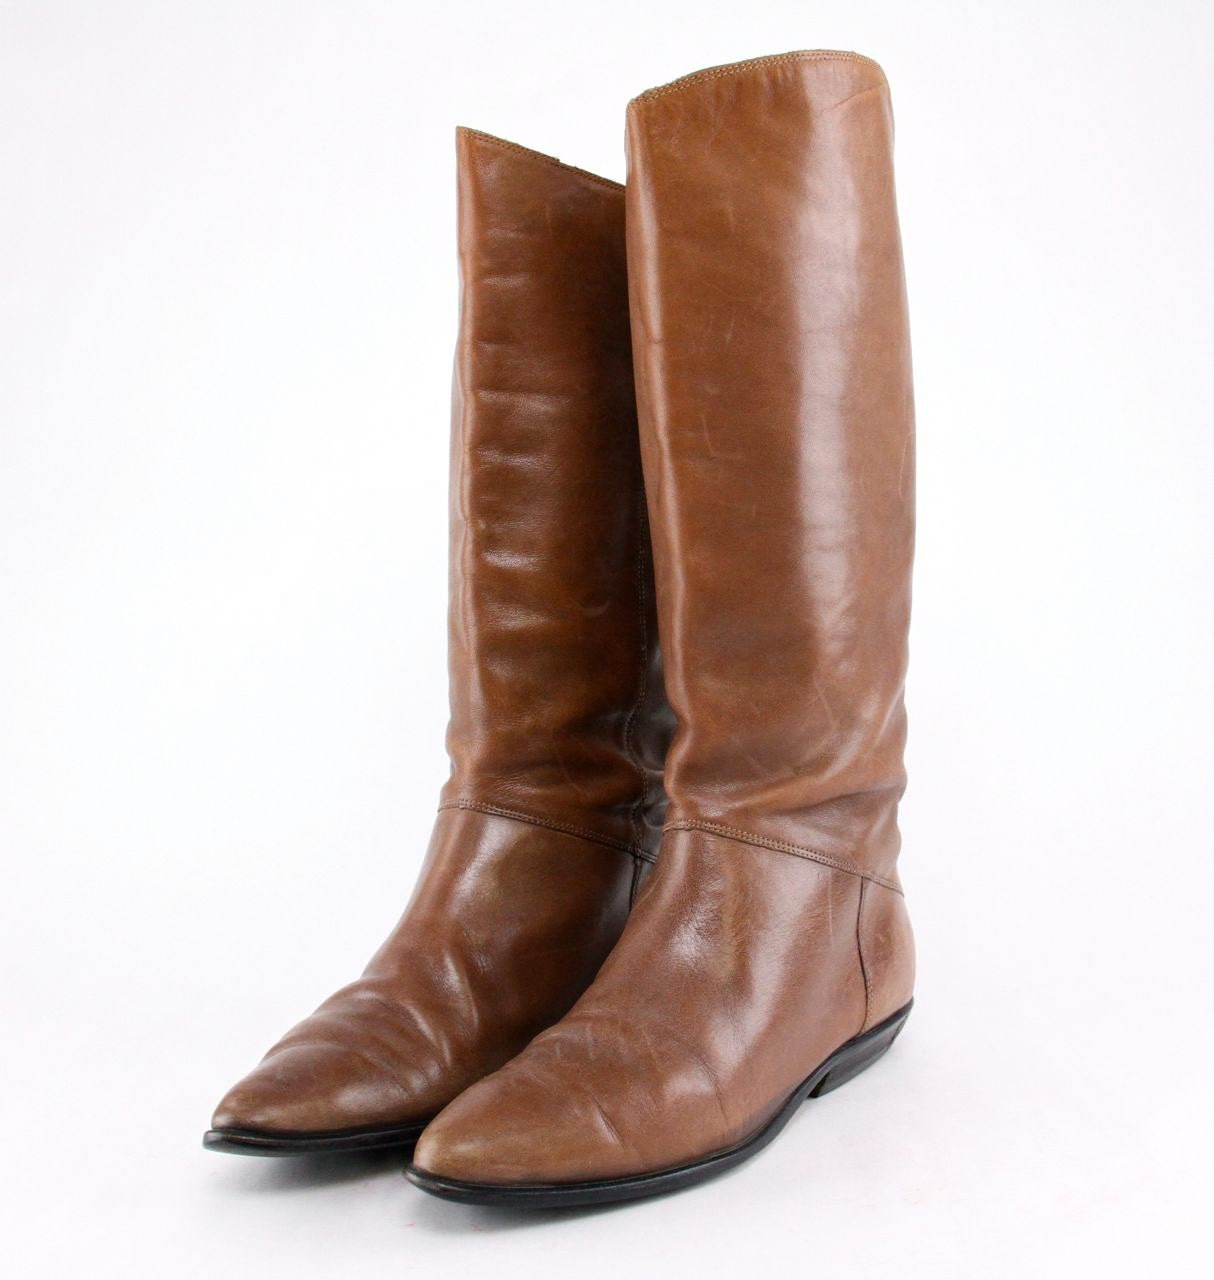 equestrian boots chestnut brown leather flat pull